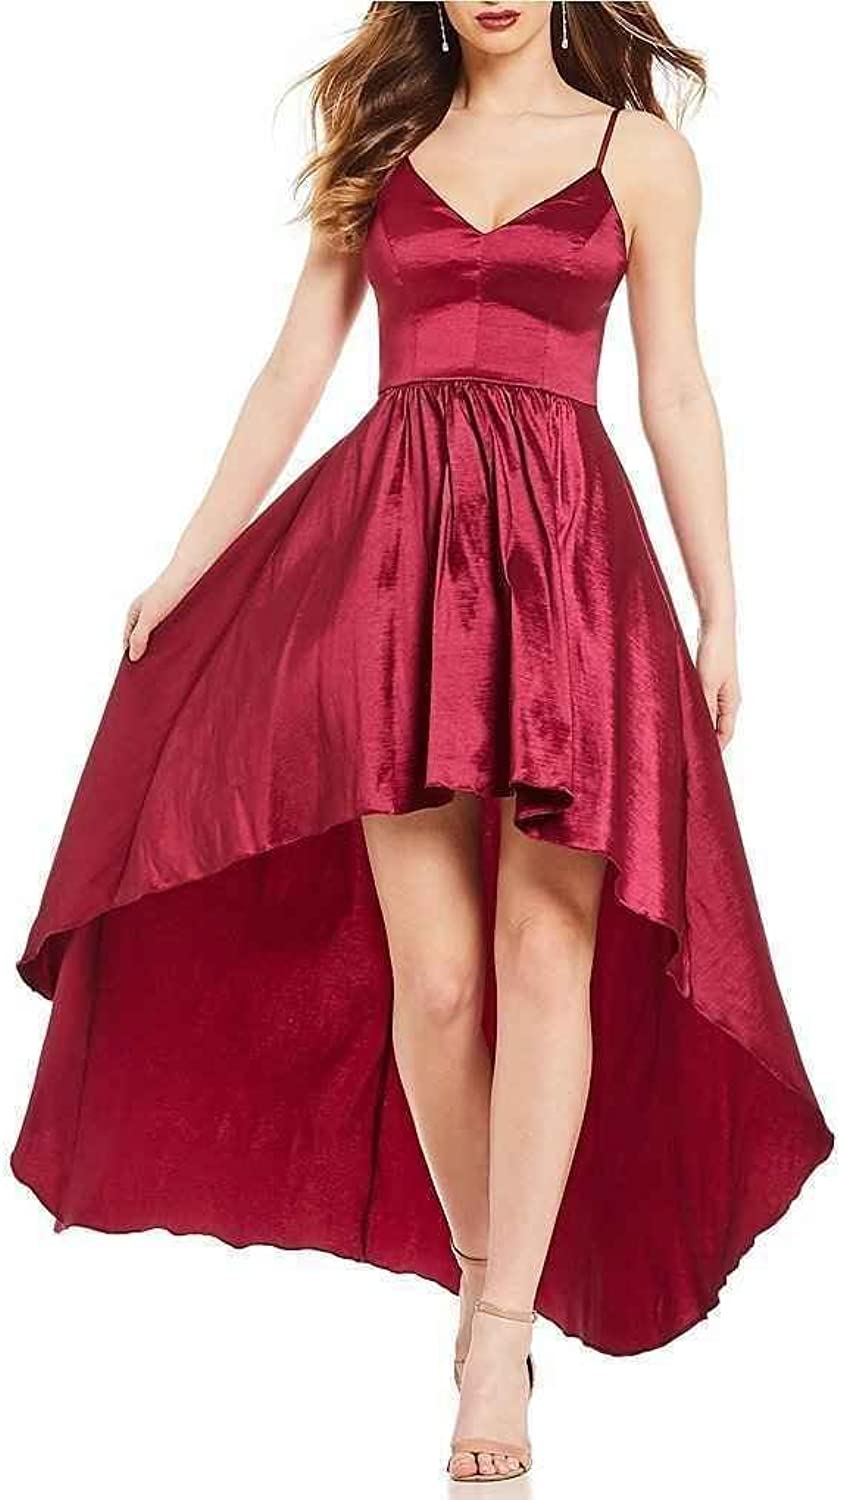 Homecoming Dress Spaghetti Strap High Low V Neck Sexy Women Formal Evening Cocktail Gown